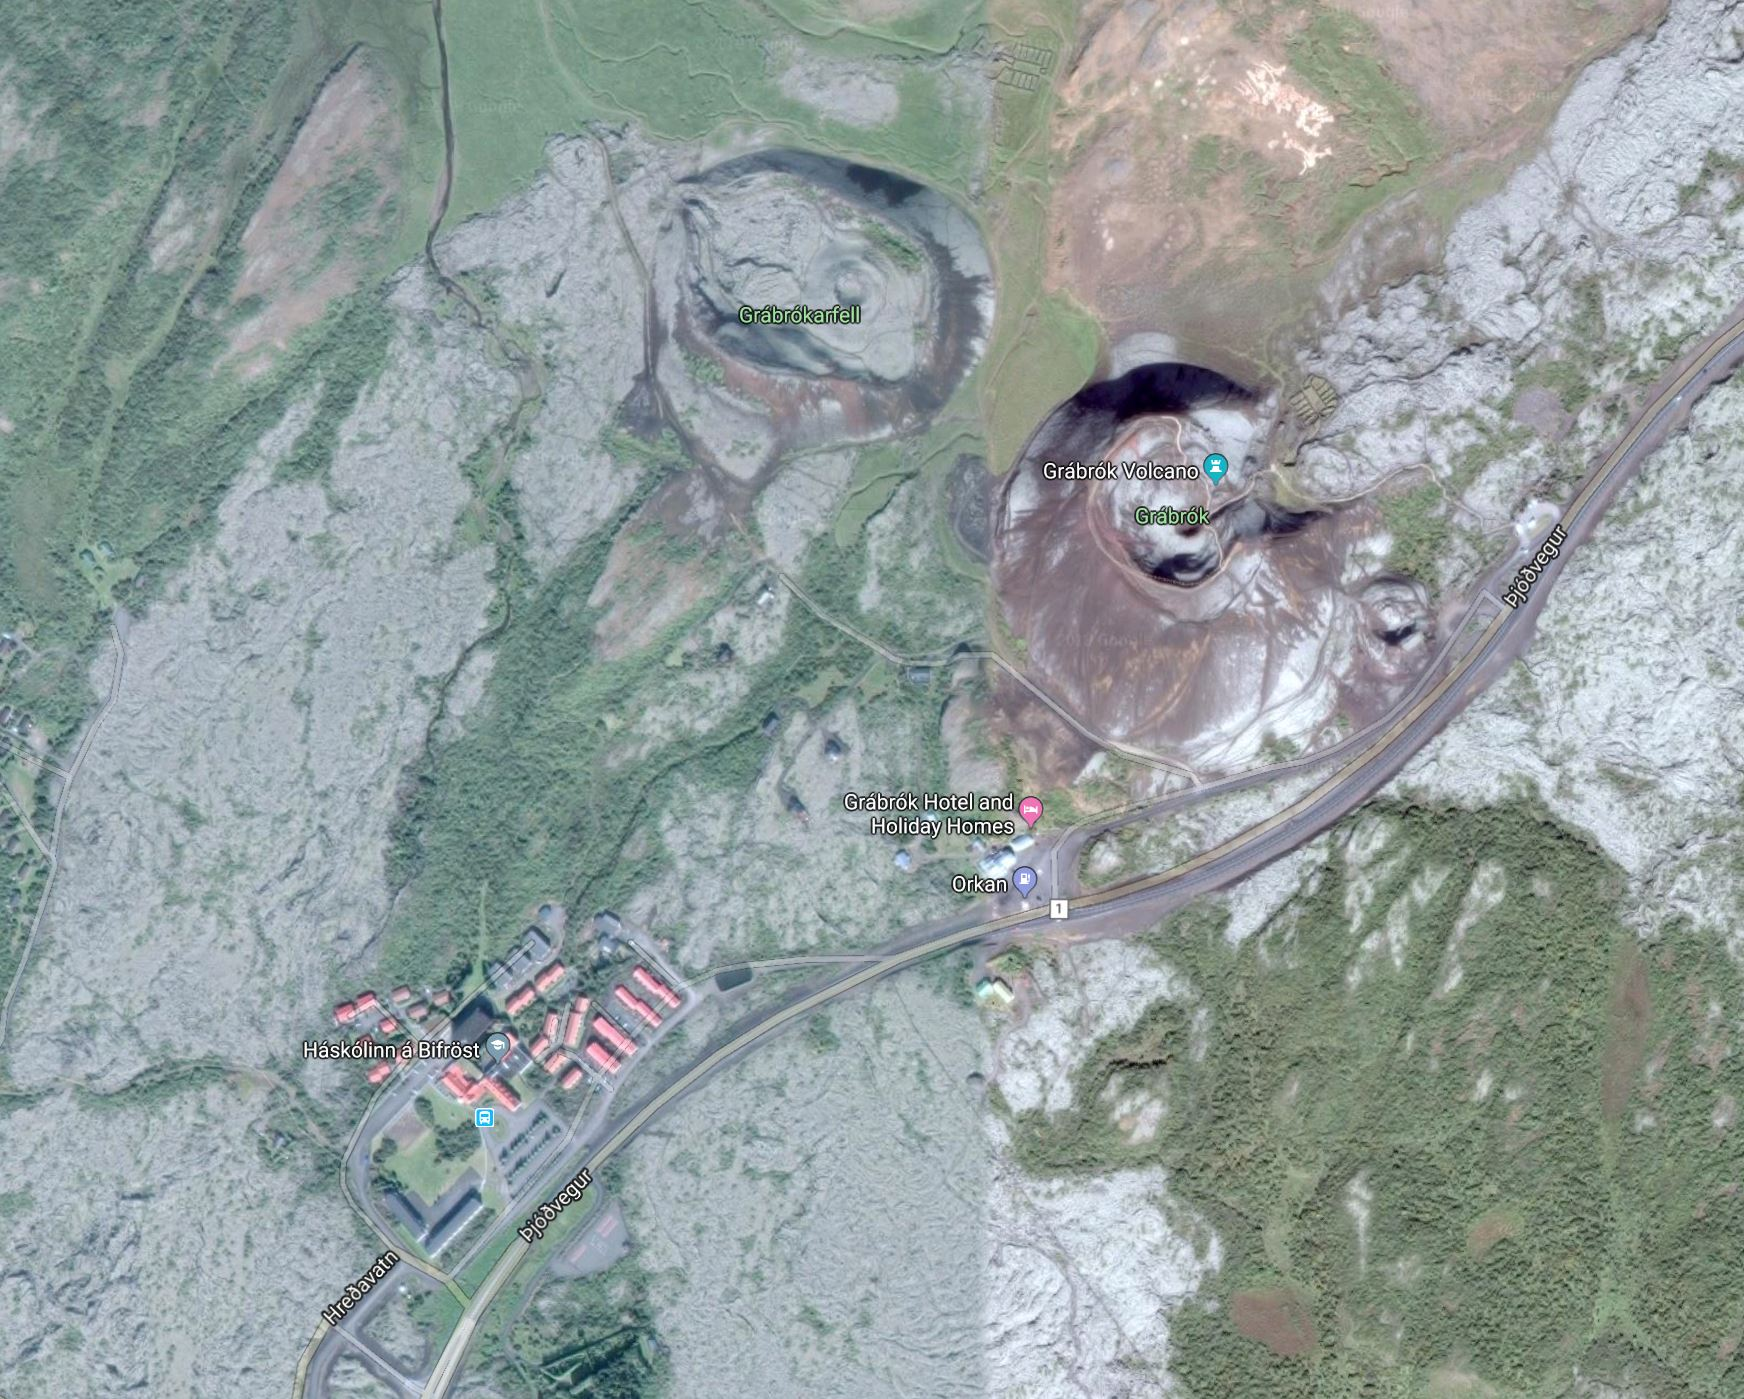 Google map view of Bifröst and Grábrók volcano